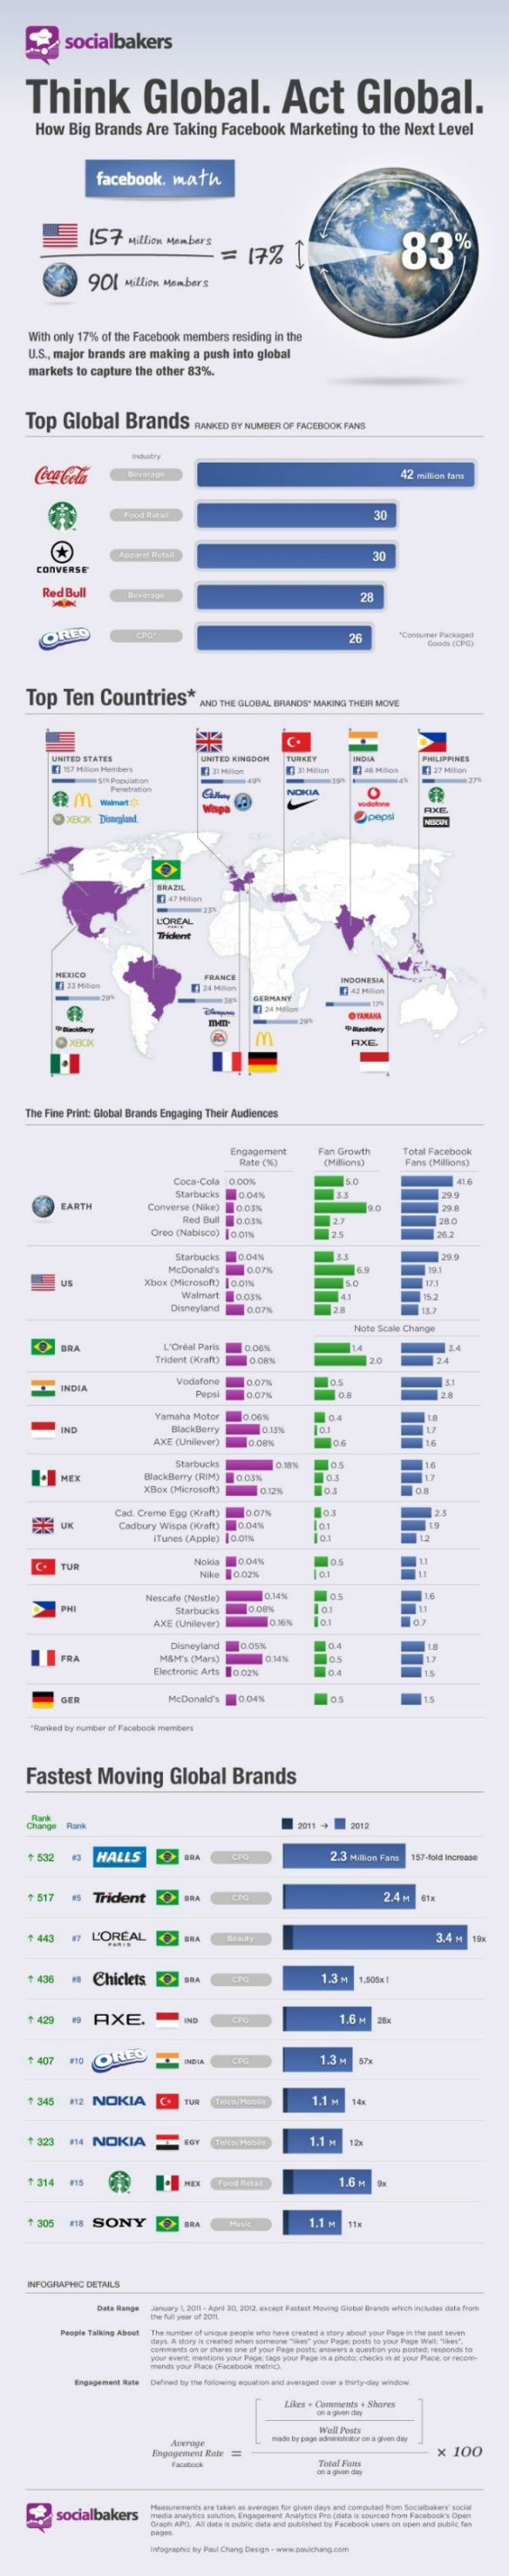 Most social brands globally